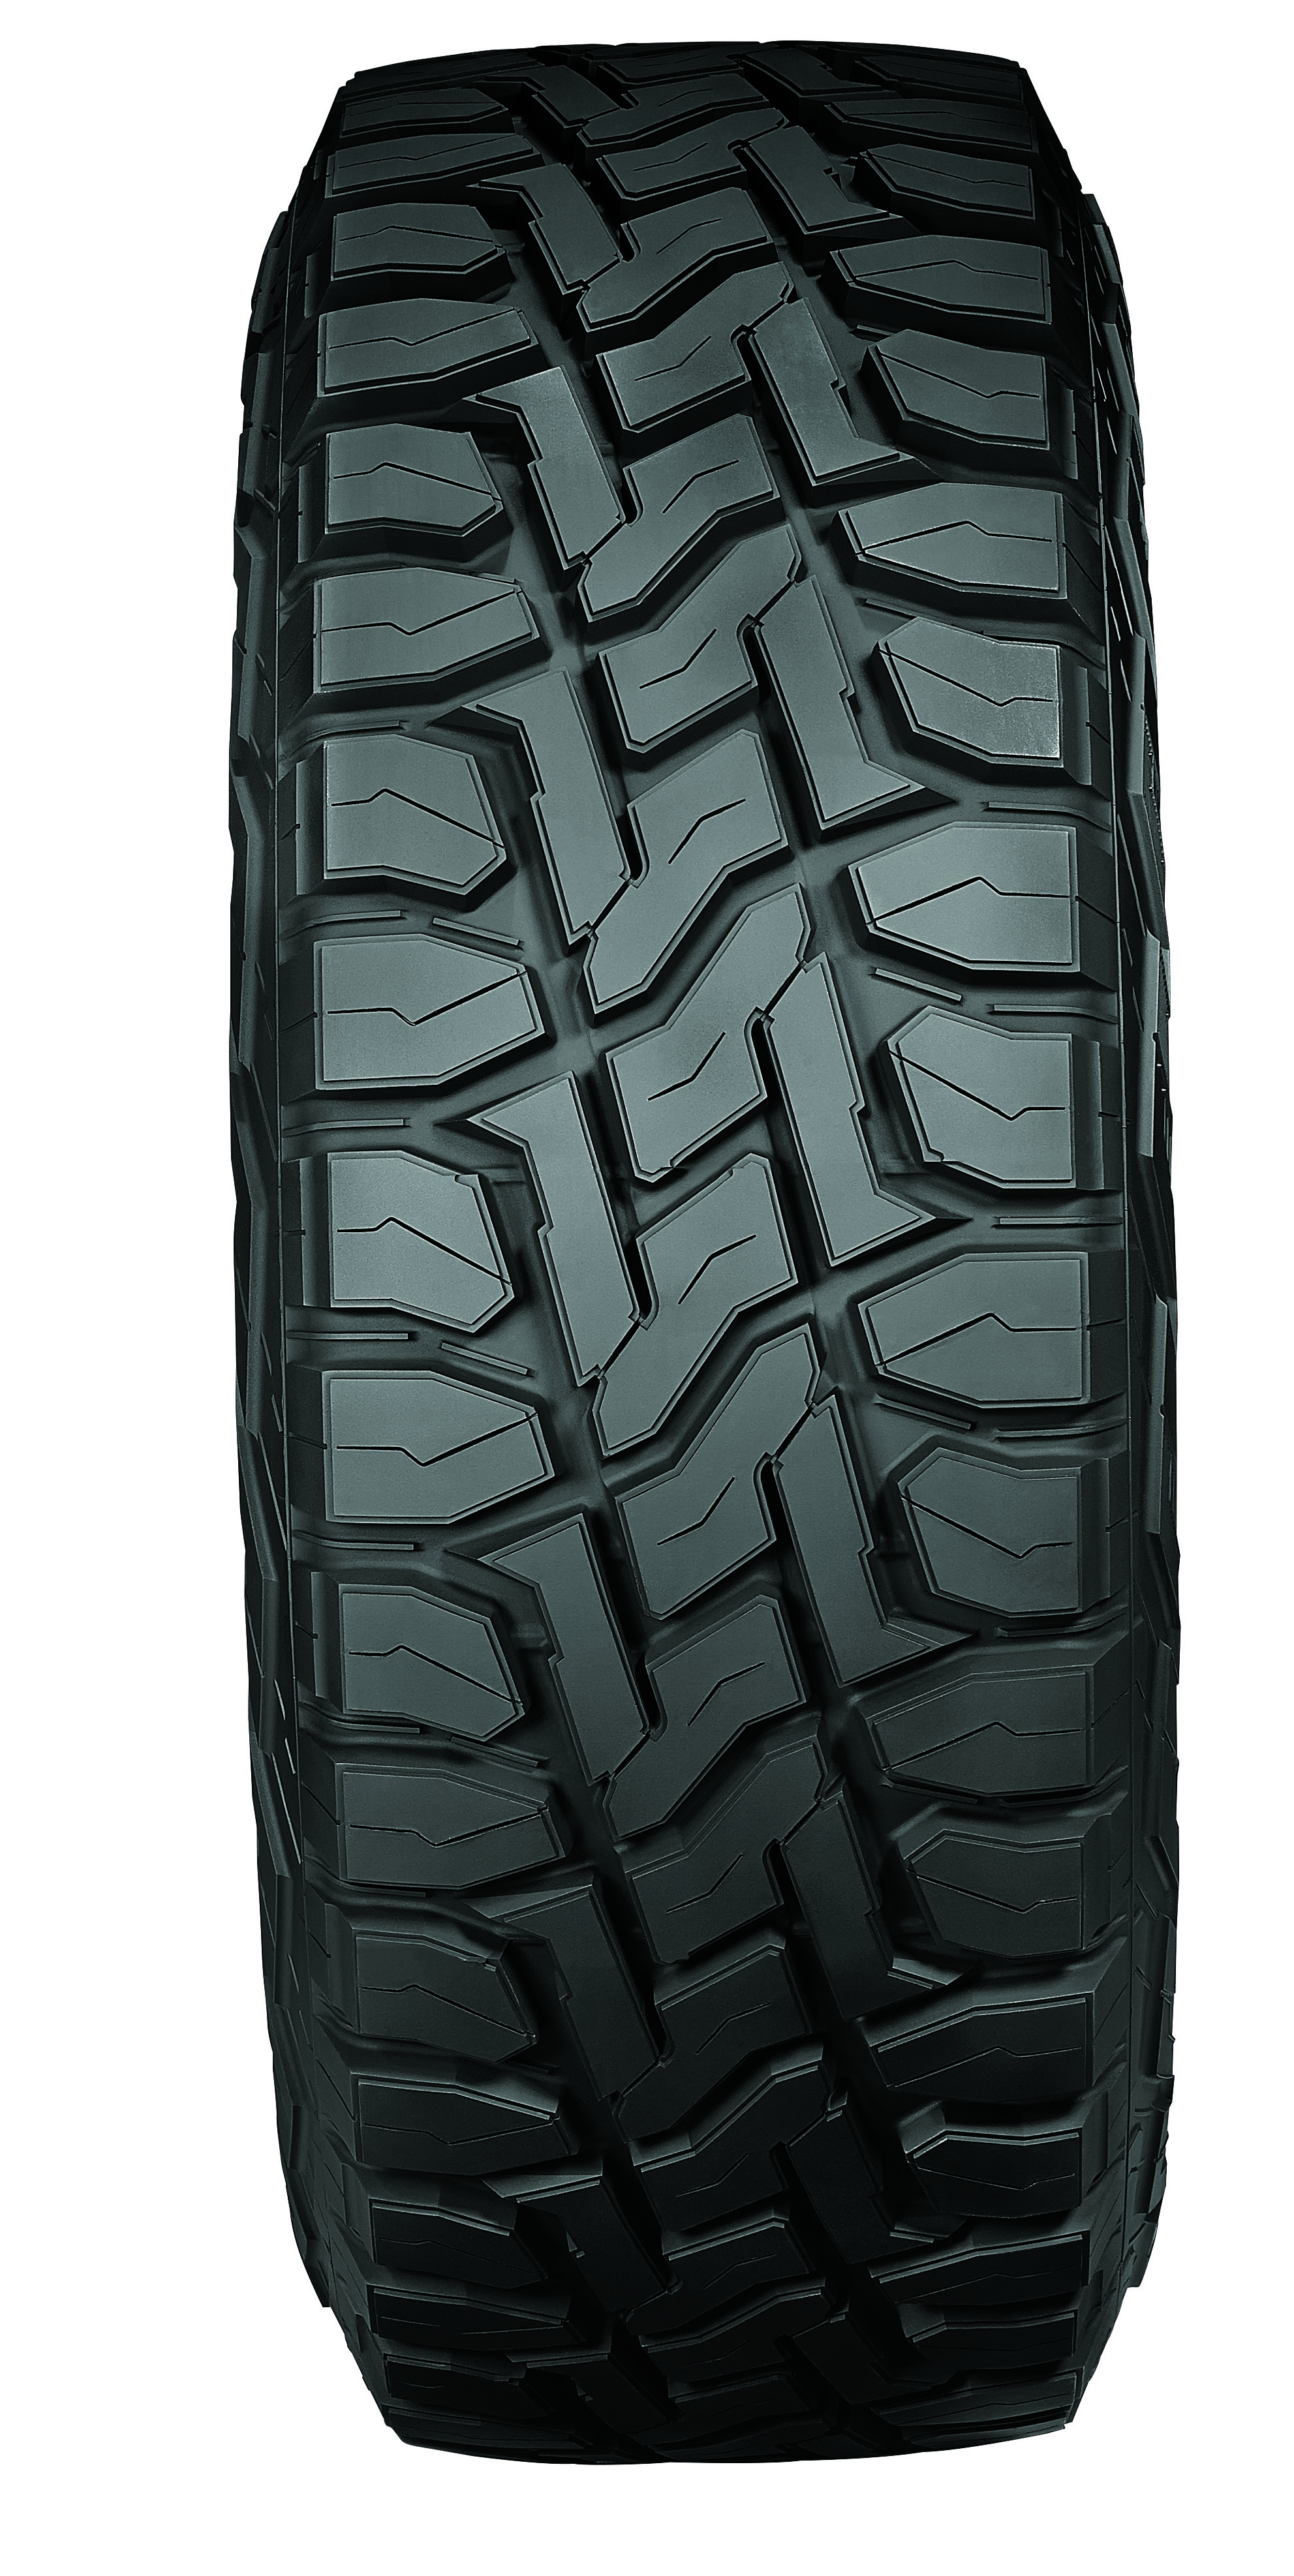 Toyo Open Country R/T offers best of both worlds